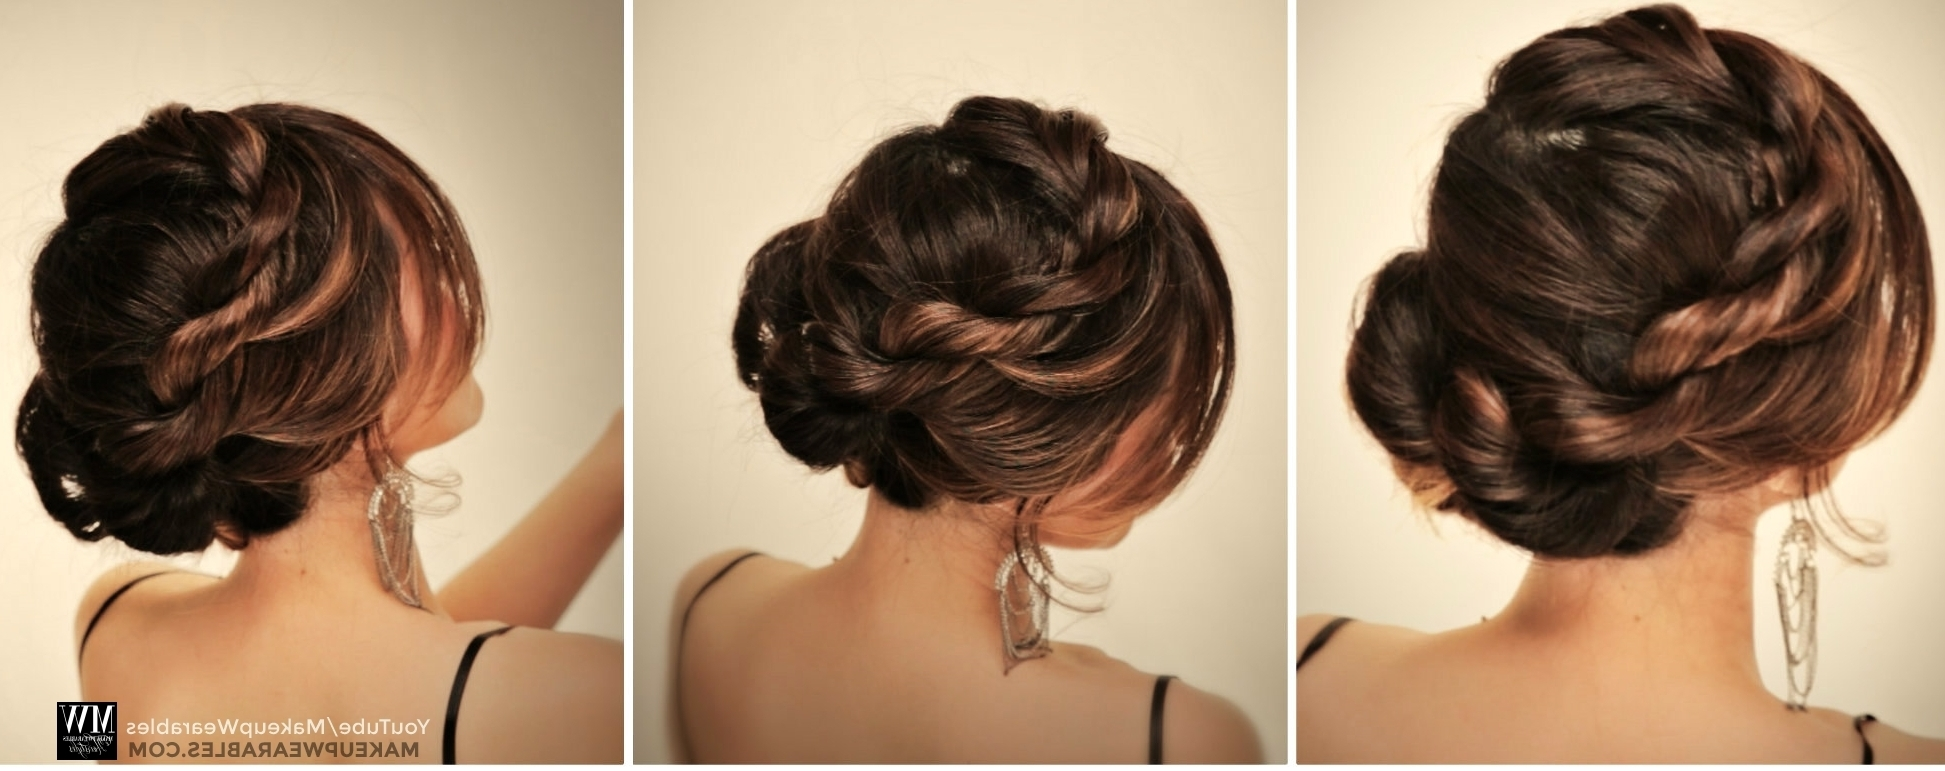 How To: 5 Amazingly Cute + Easy Hairstyles With A Simple Twist For Easy Updo Hairstyles For Long Hair (View 11 of 15)